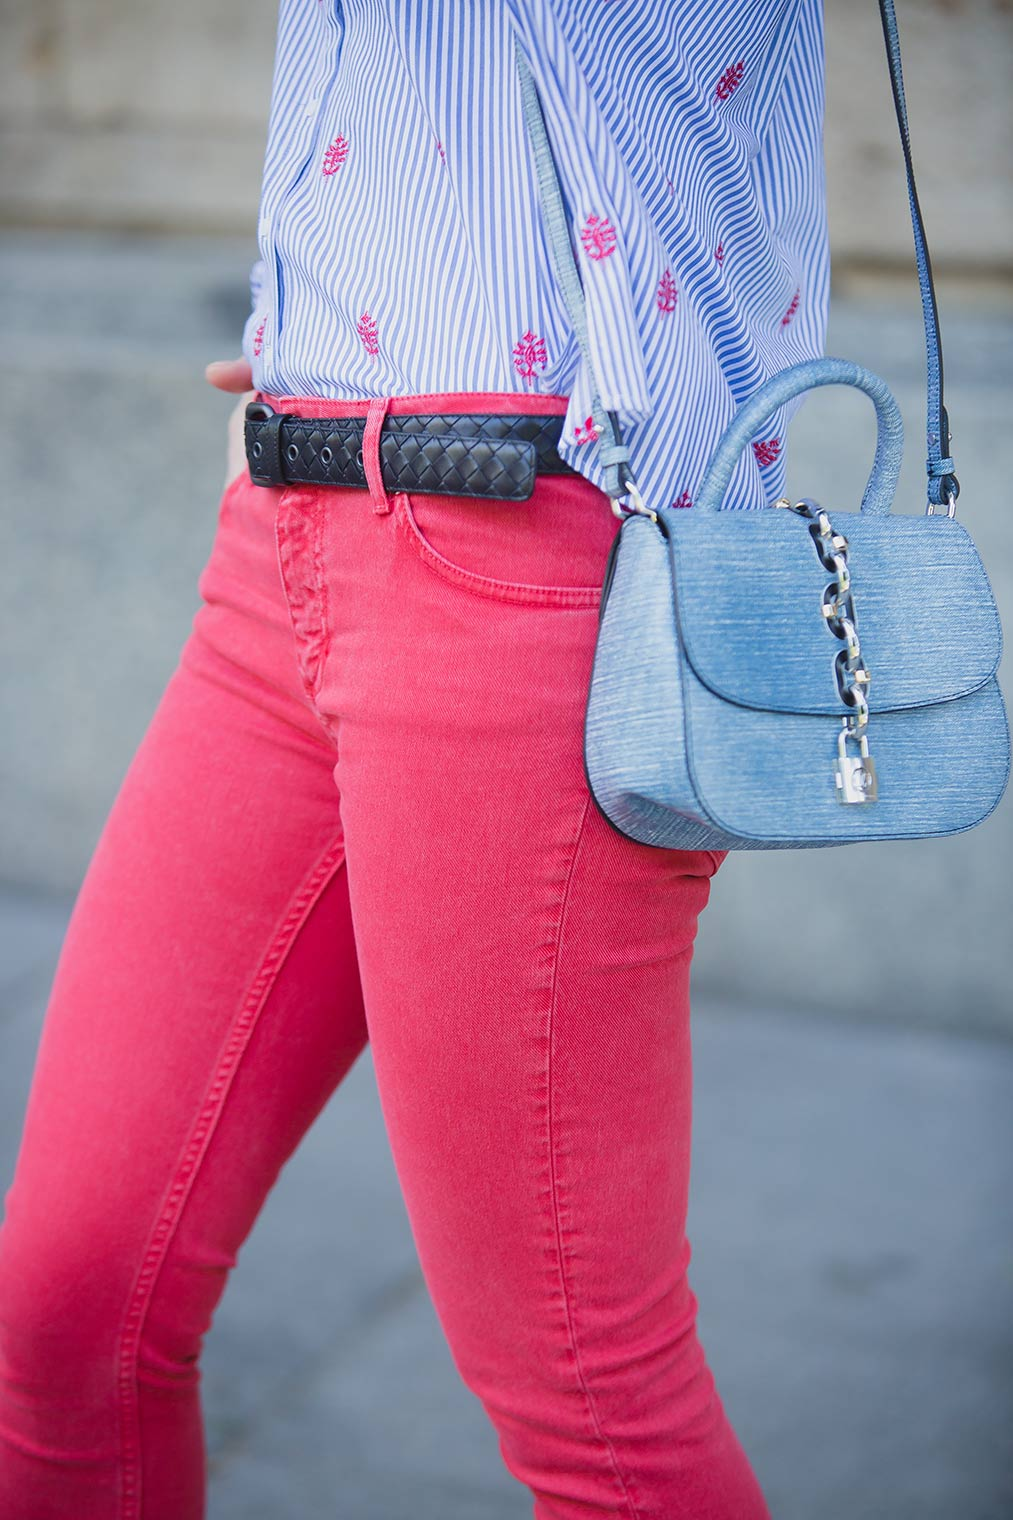 Chic Journal Petra wearing Louis Vuitton Chain It Bag and red jeans